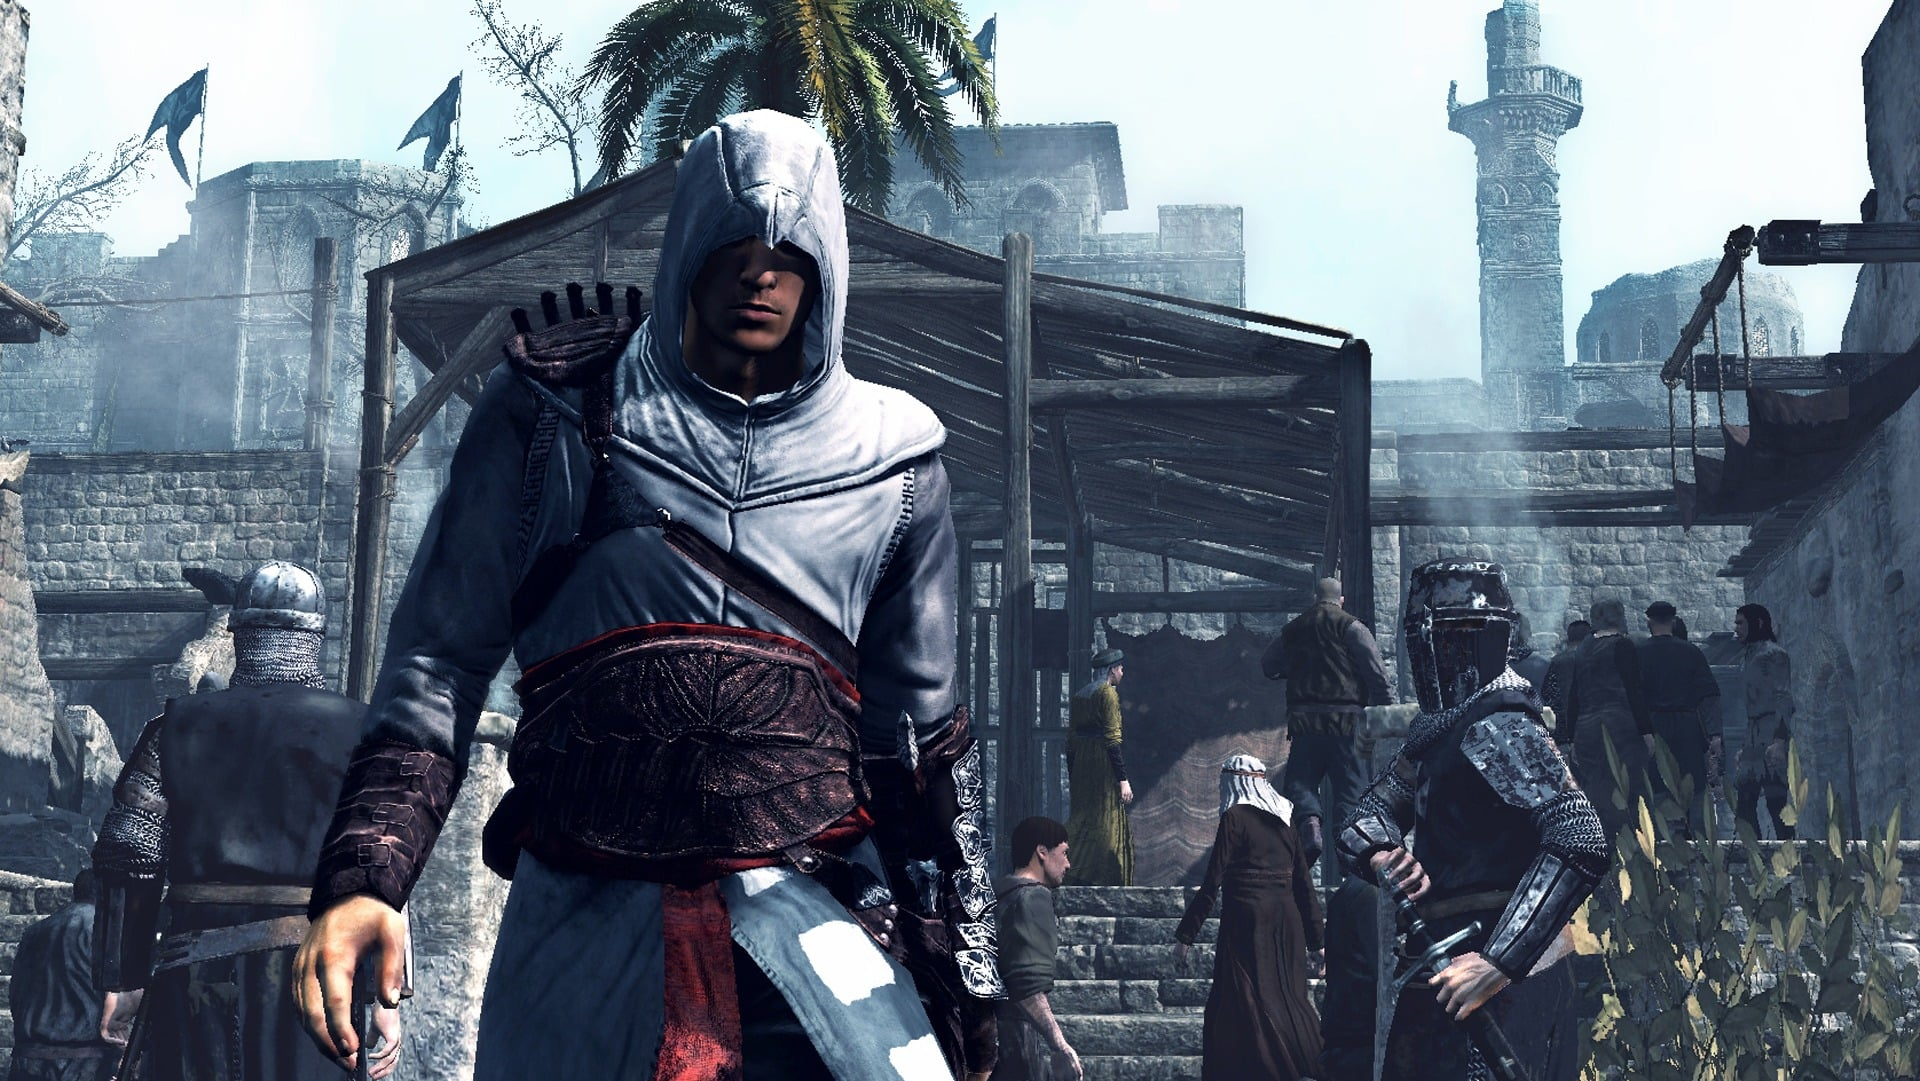 Assassins creed games free online - Creed 1 Pc Game Free Download Screenshot 3